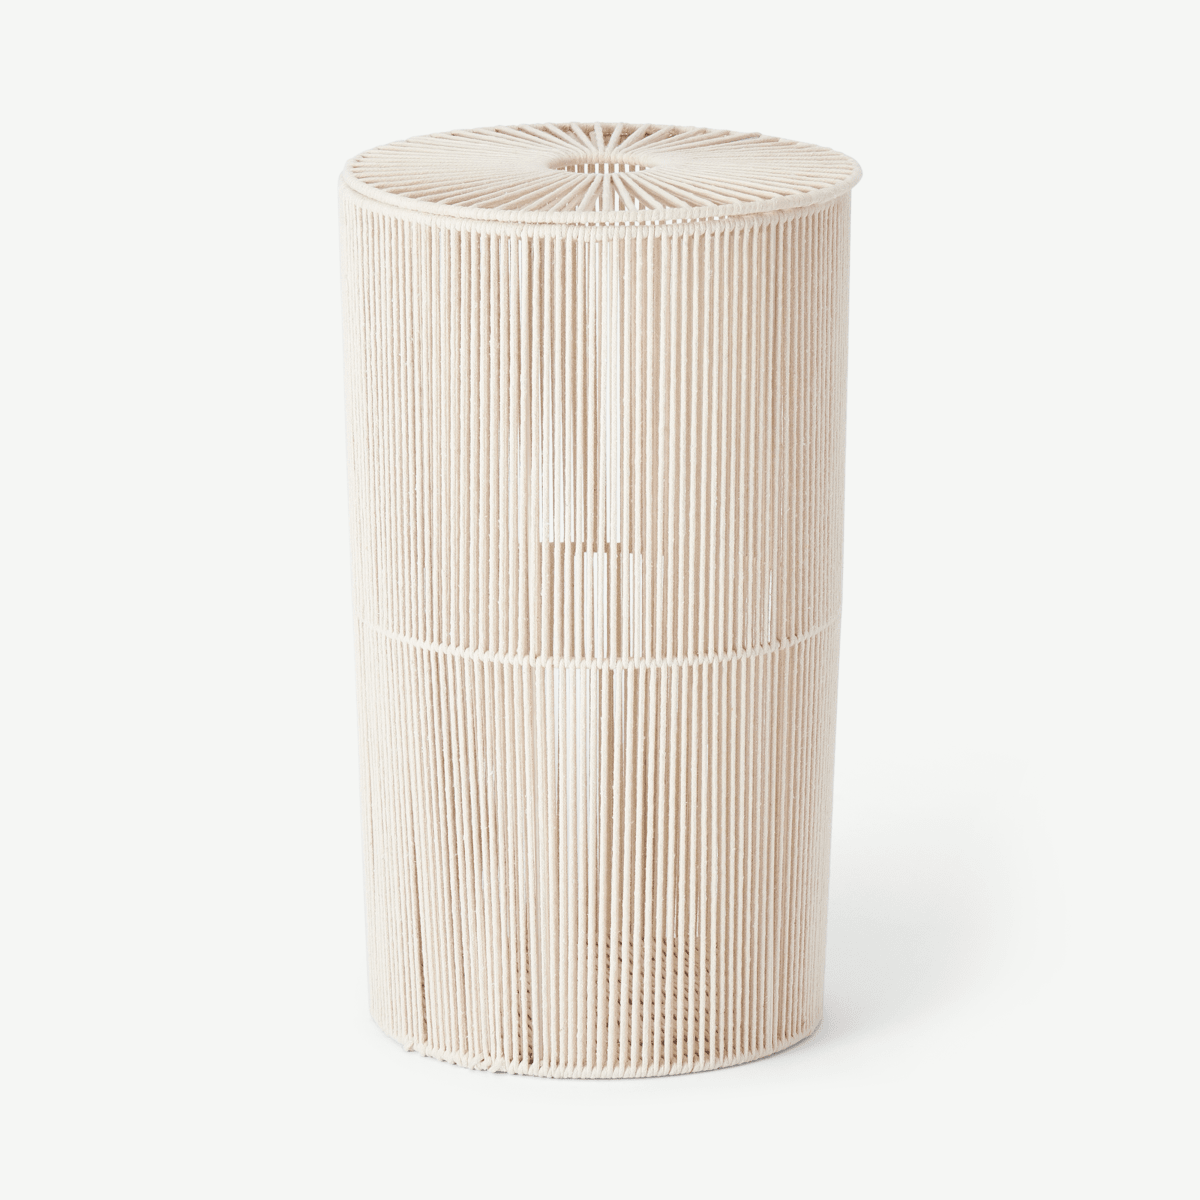 Holgate Rope Laundry Basket, Off White